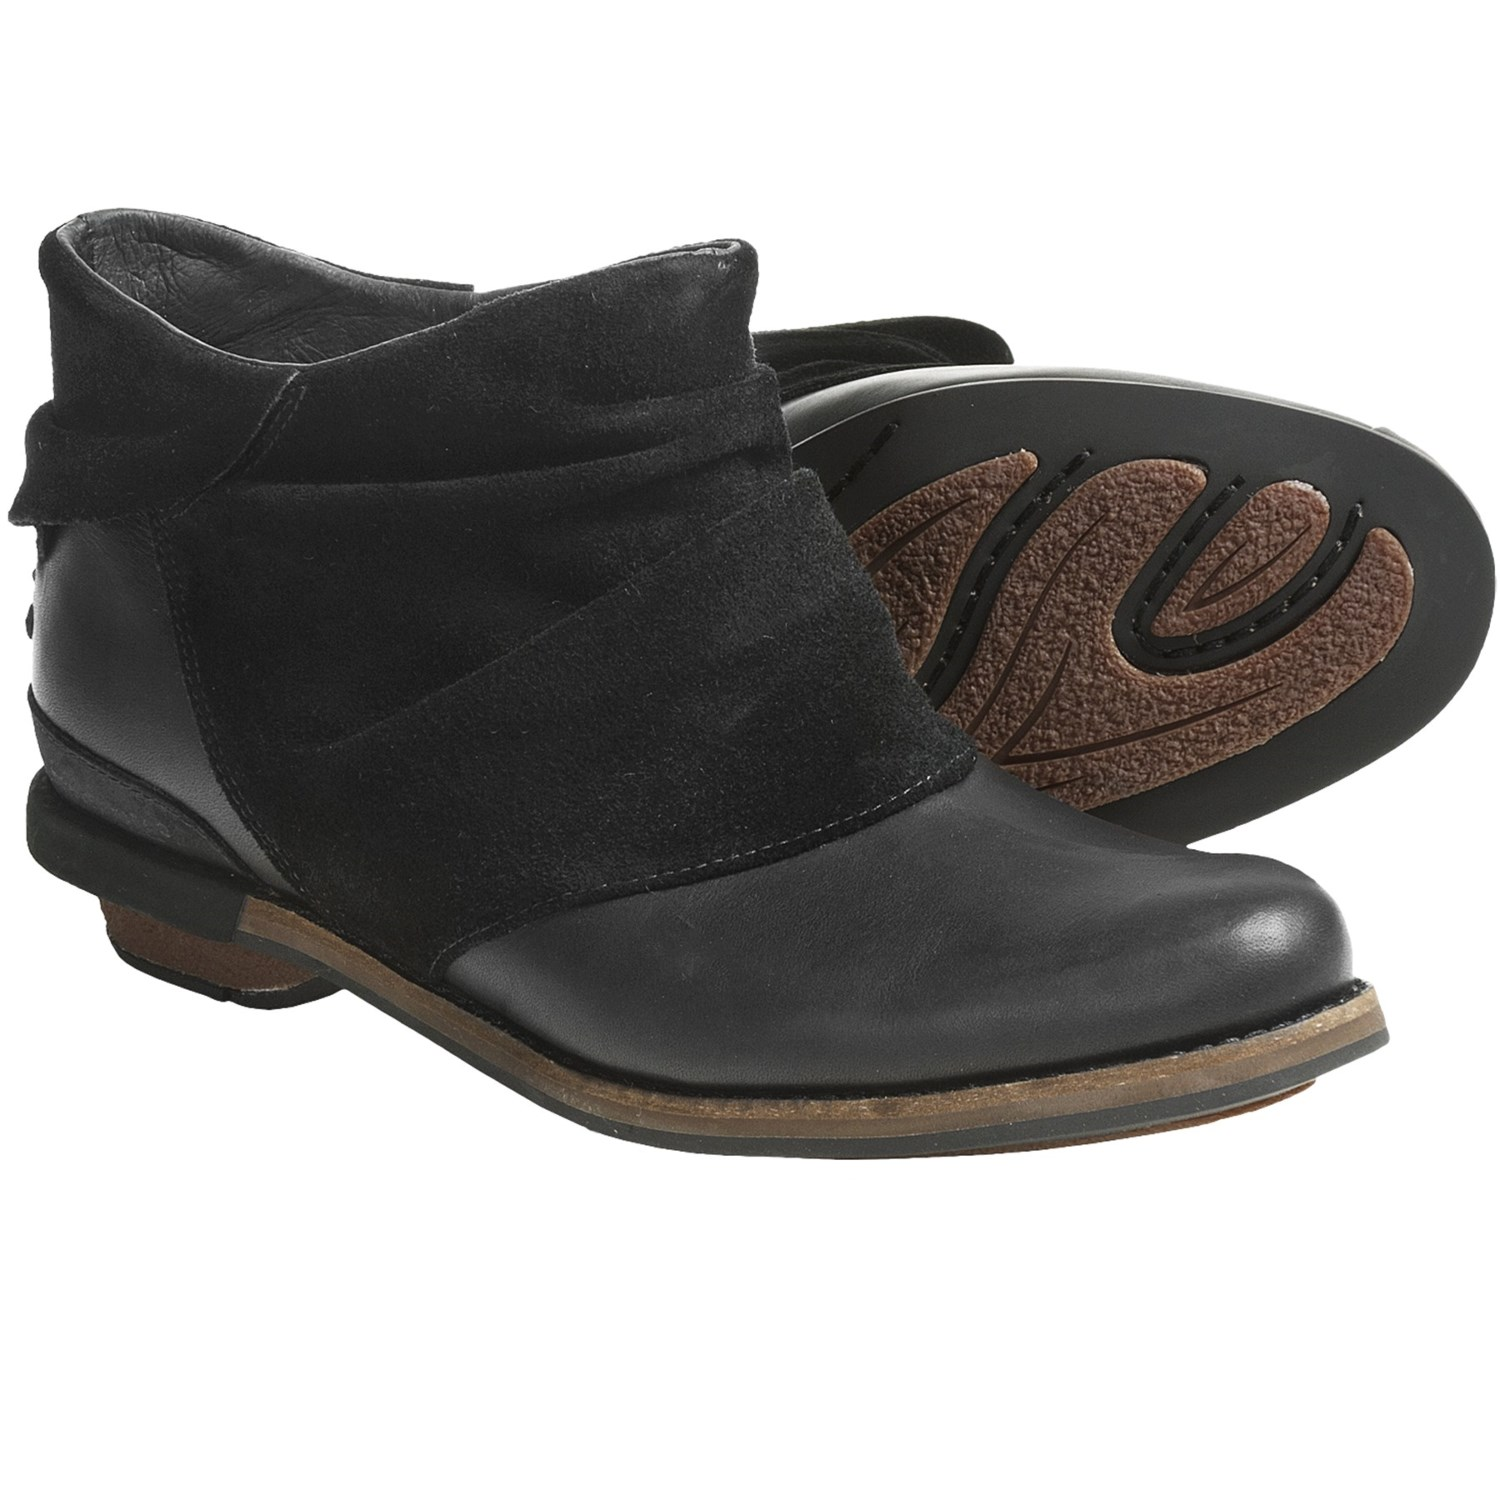 patagonia addie ruffle ankle boots leather recycled